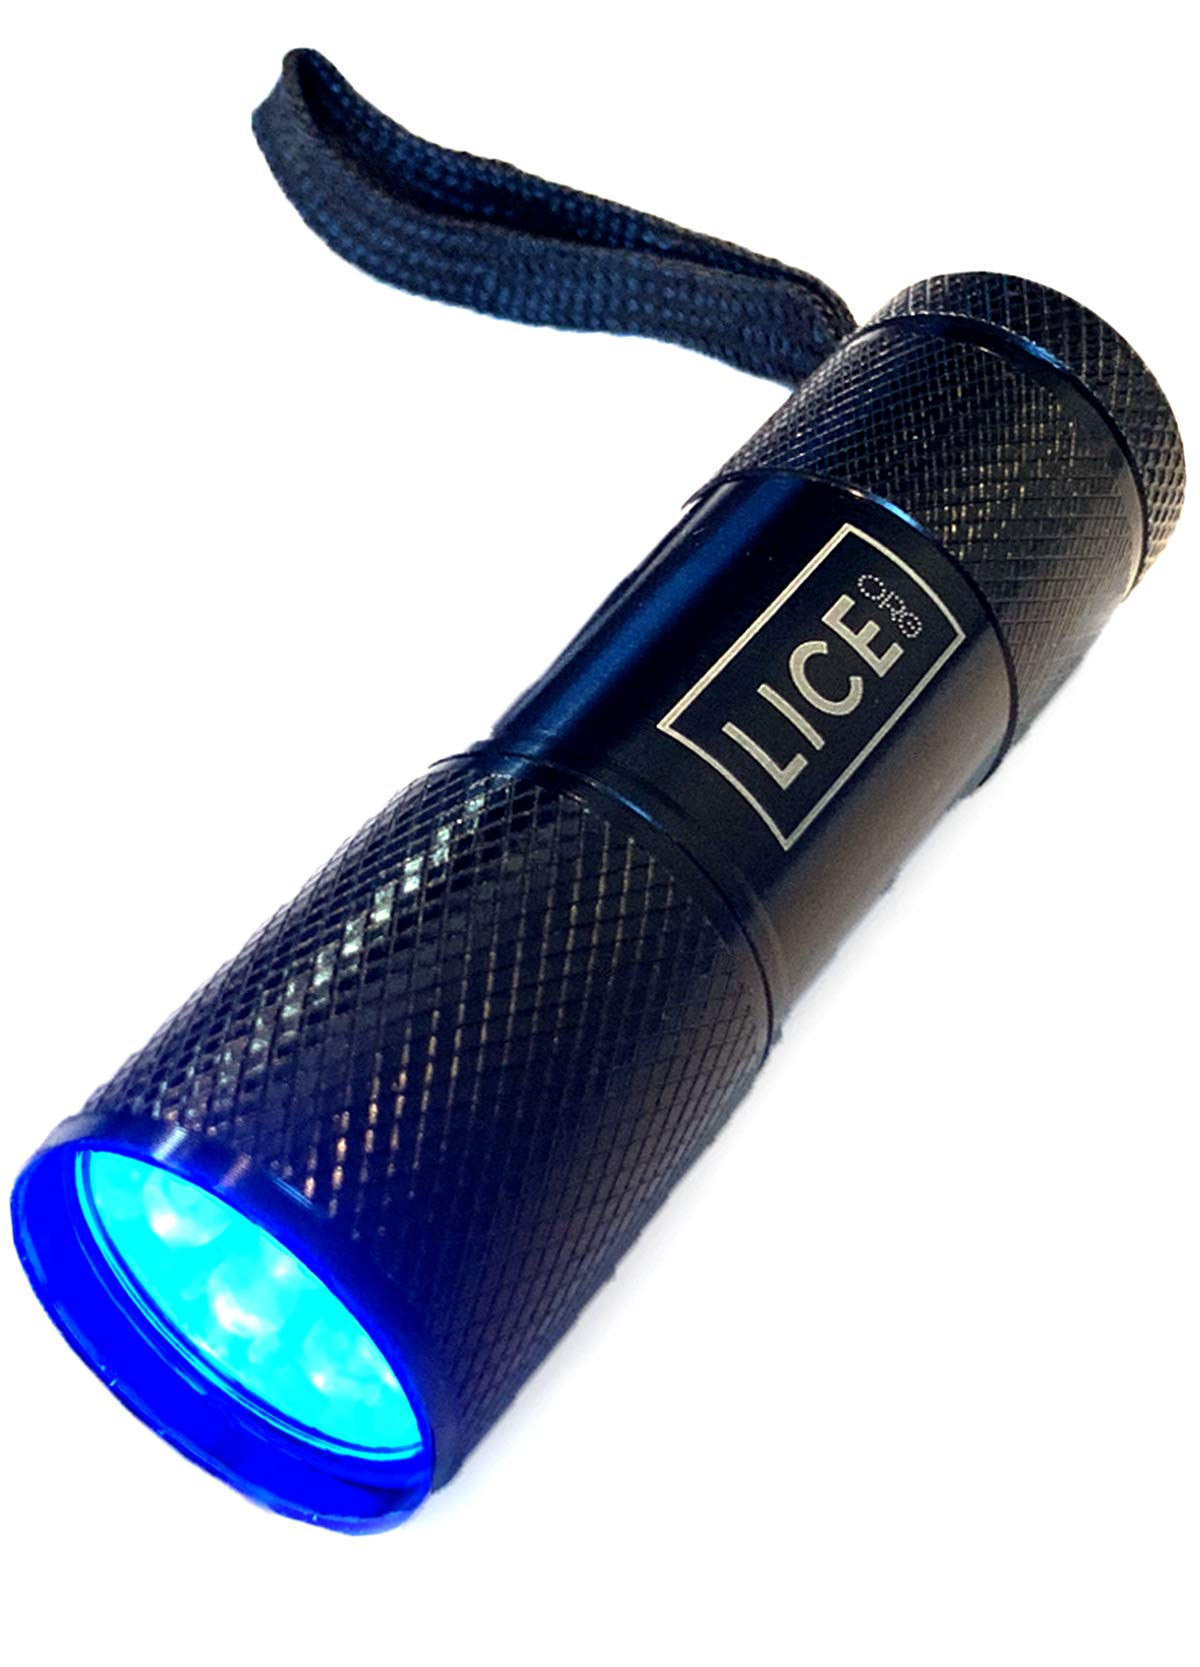 Official LICE.ORG Lice Light - Blacklight/UV Flashlight to Detect Head Lice, Bed Bugs Or Pet Urine (5) by LICE.ORG